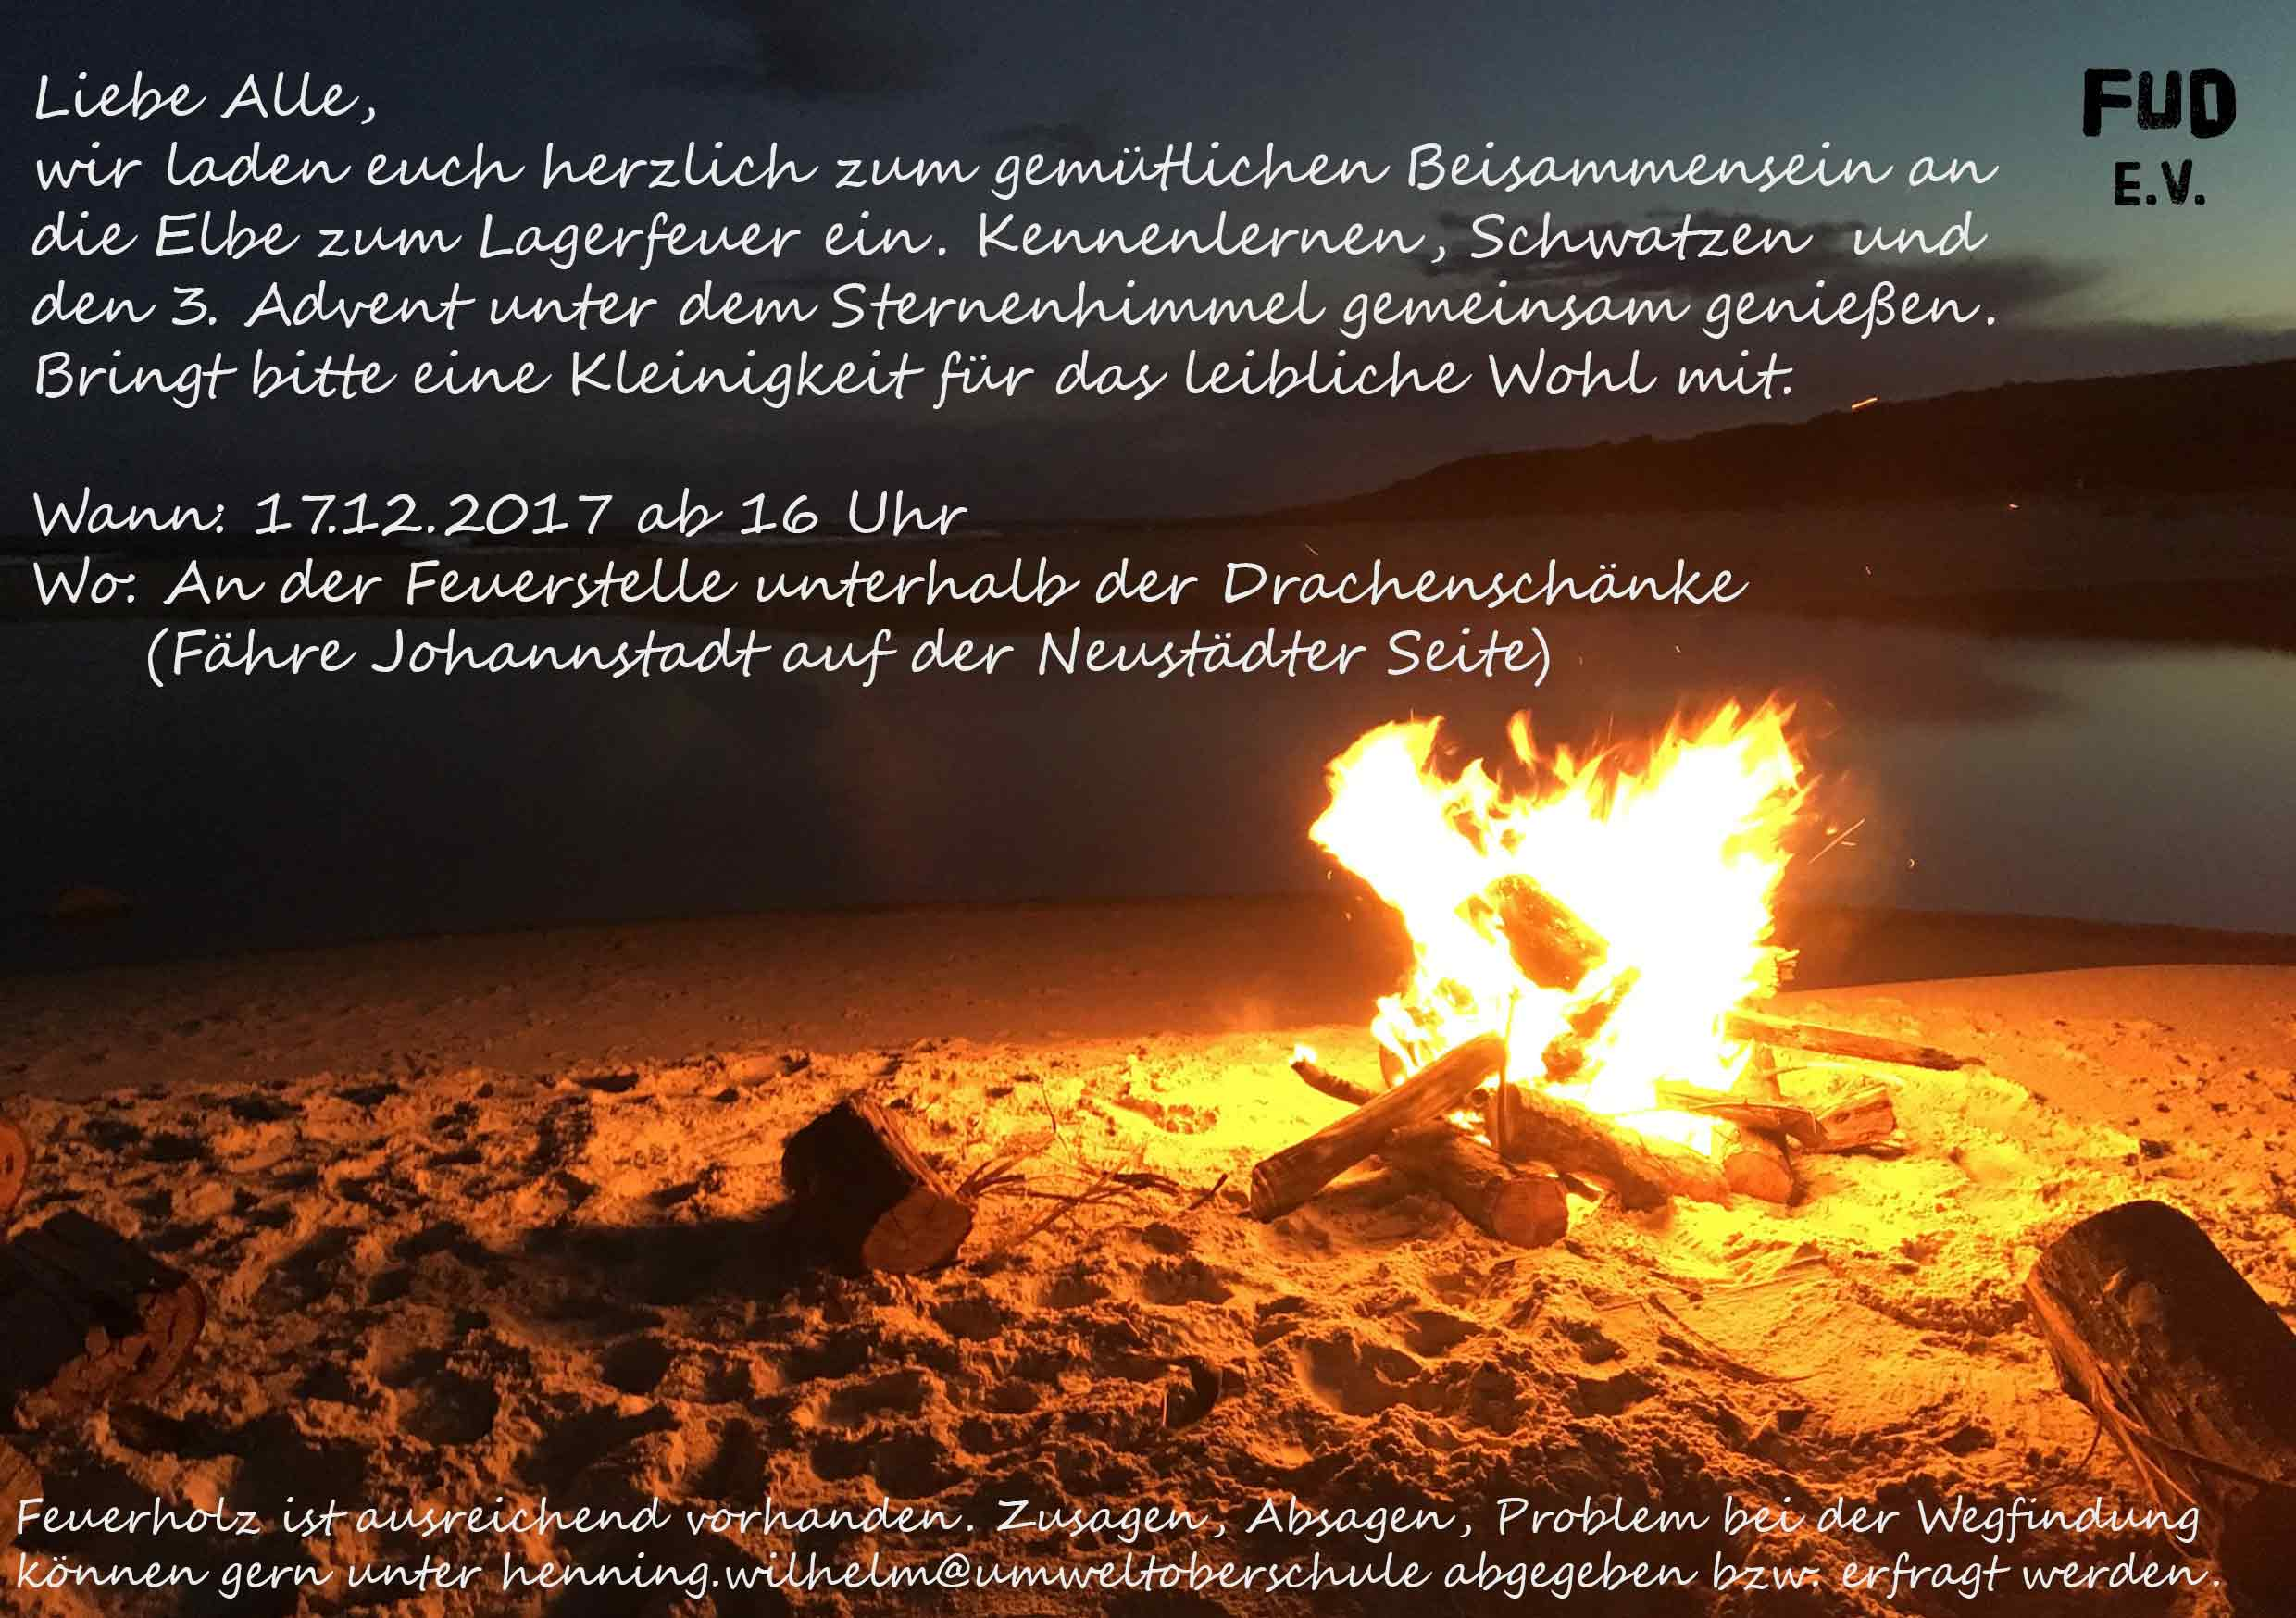 Lagerfeuer 3. Advent